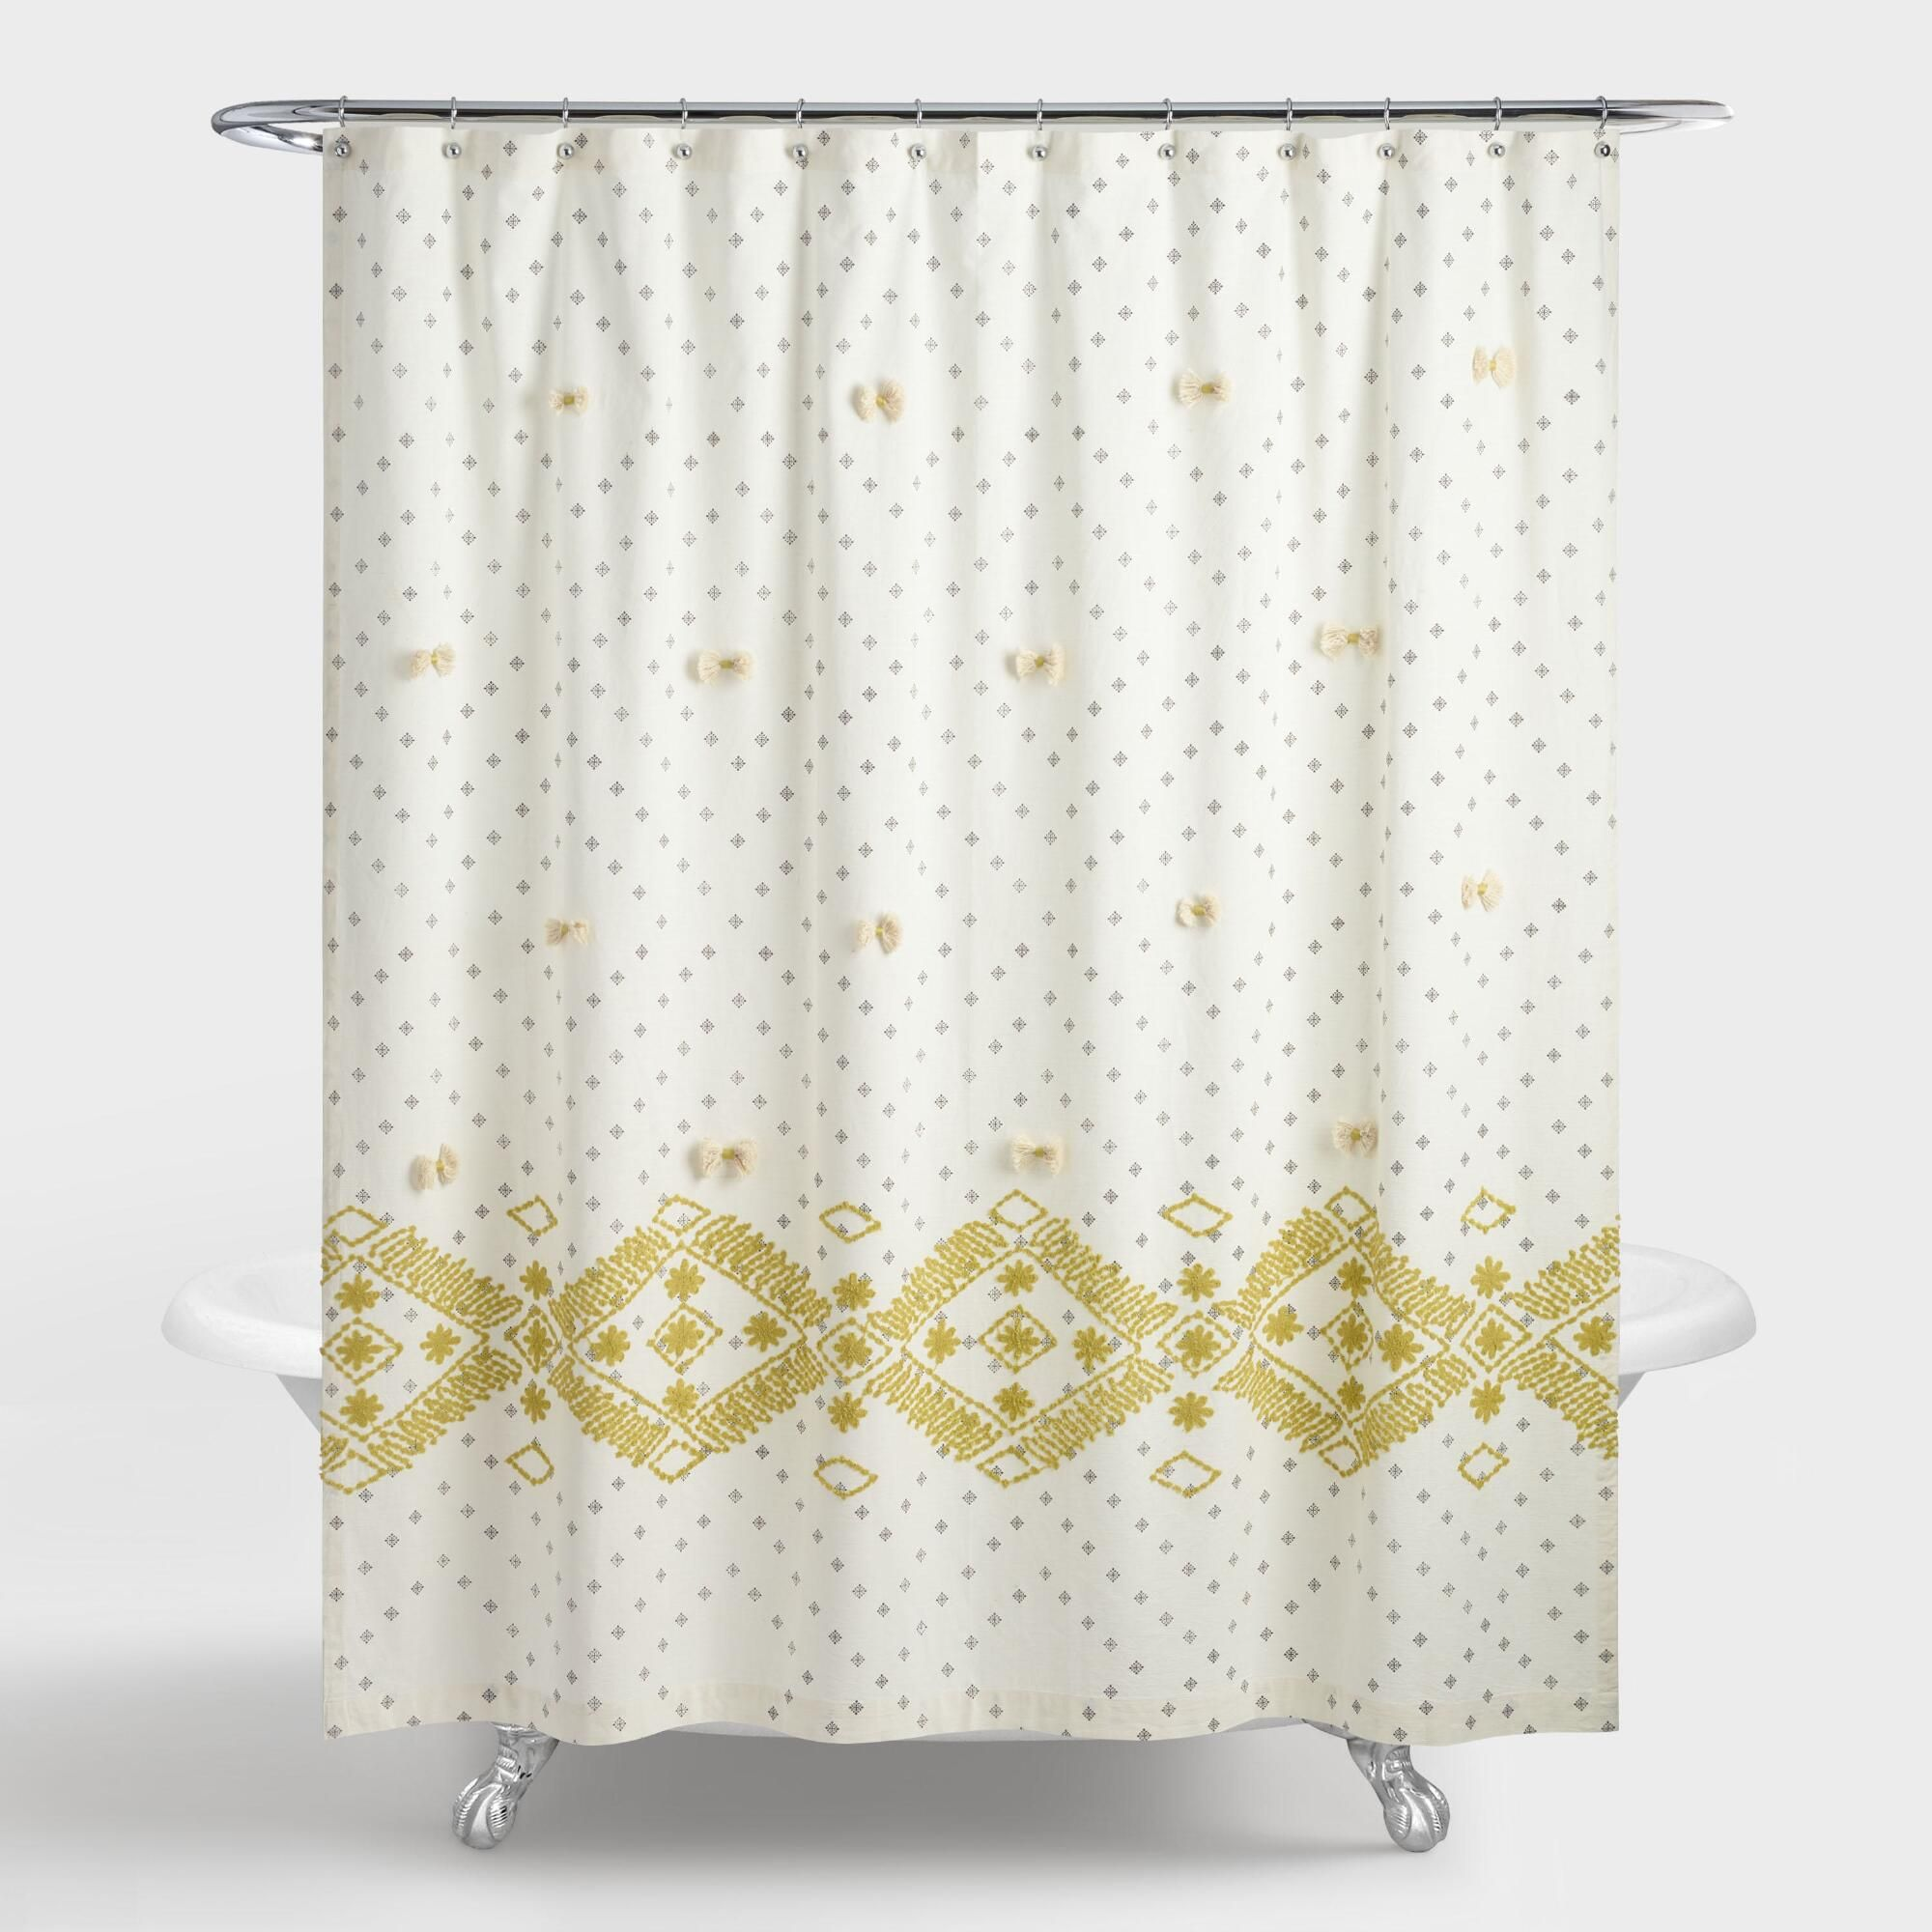 Cress green and gray embroidered siya shower curtain by world market